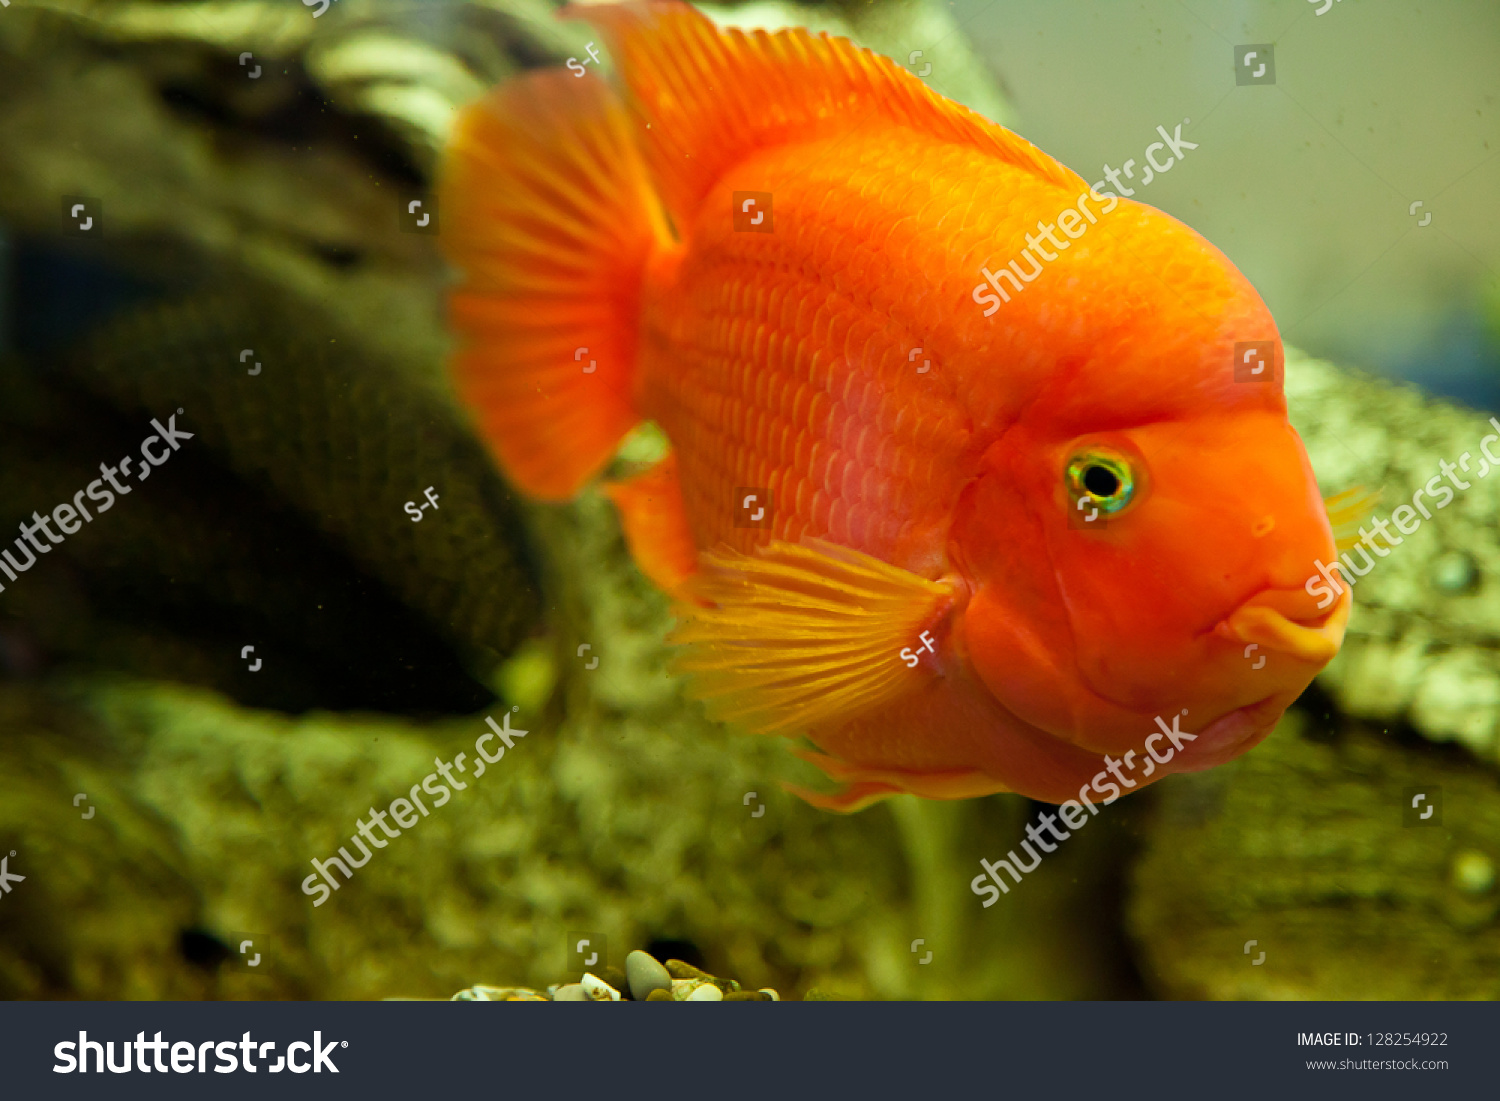 Tropical freshwater aquarium with big red fish stock photo for Big freshwater aquarium fish